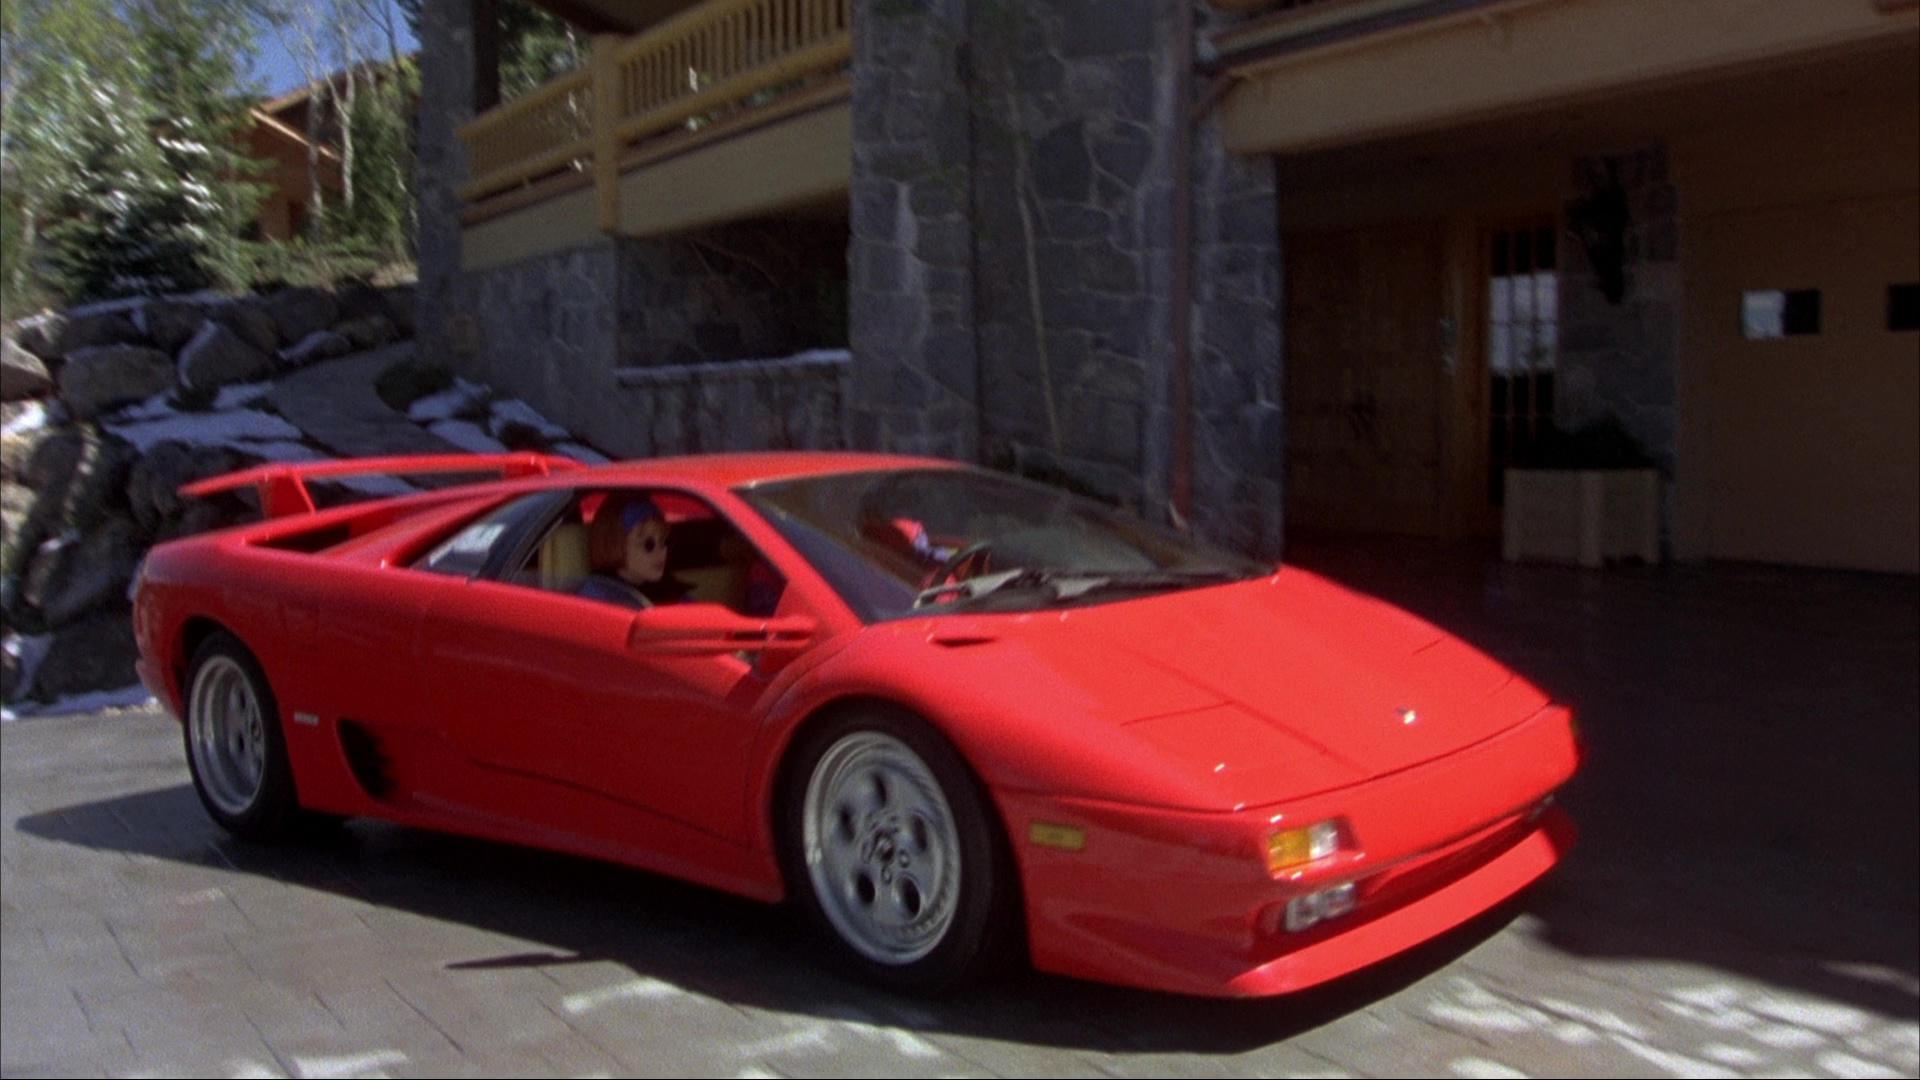 Lamborghini Diablo Red Sports Car Used By Jim Carrey And Jeff Daniels In Dumb And Dumber